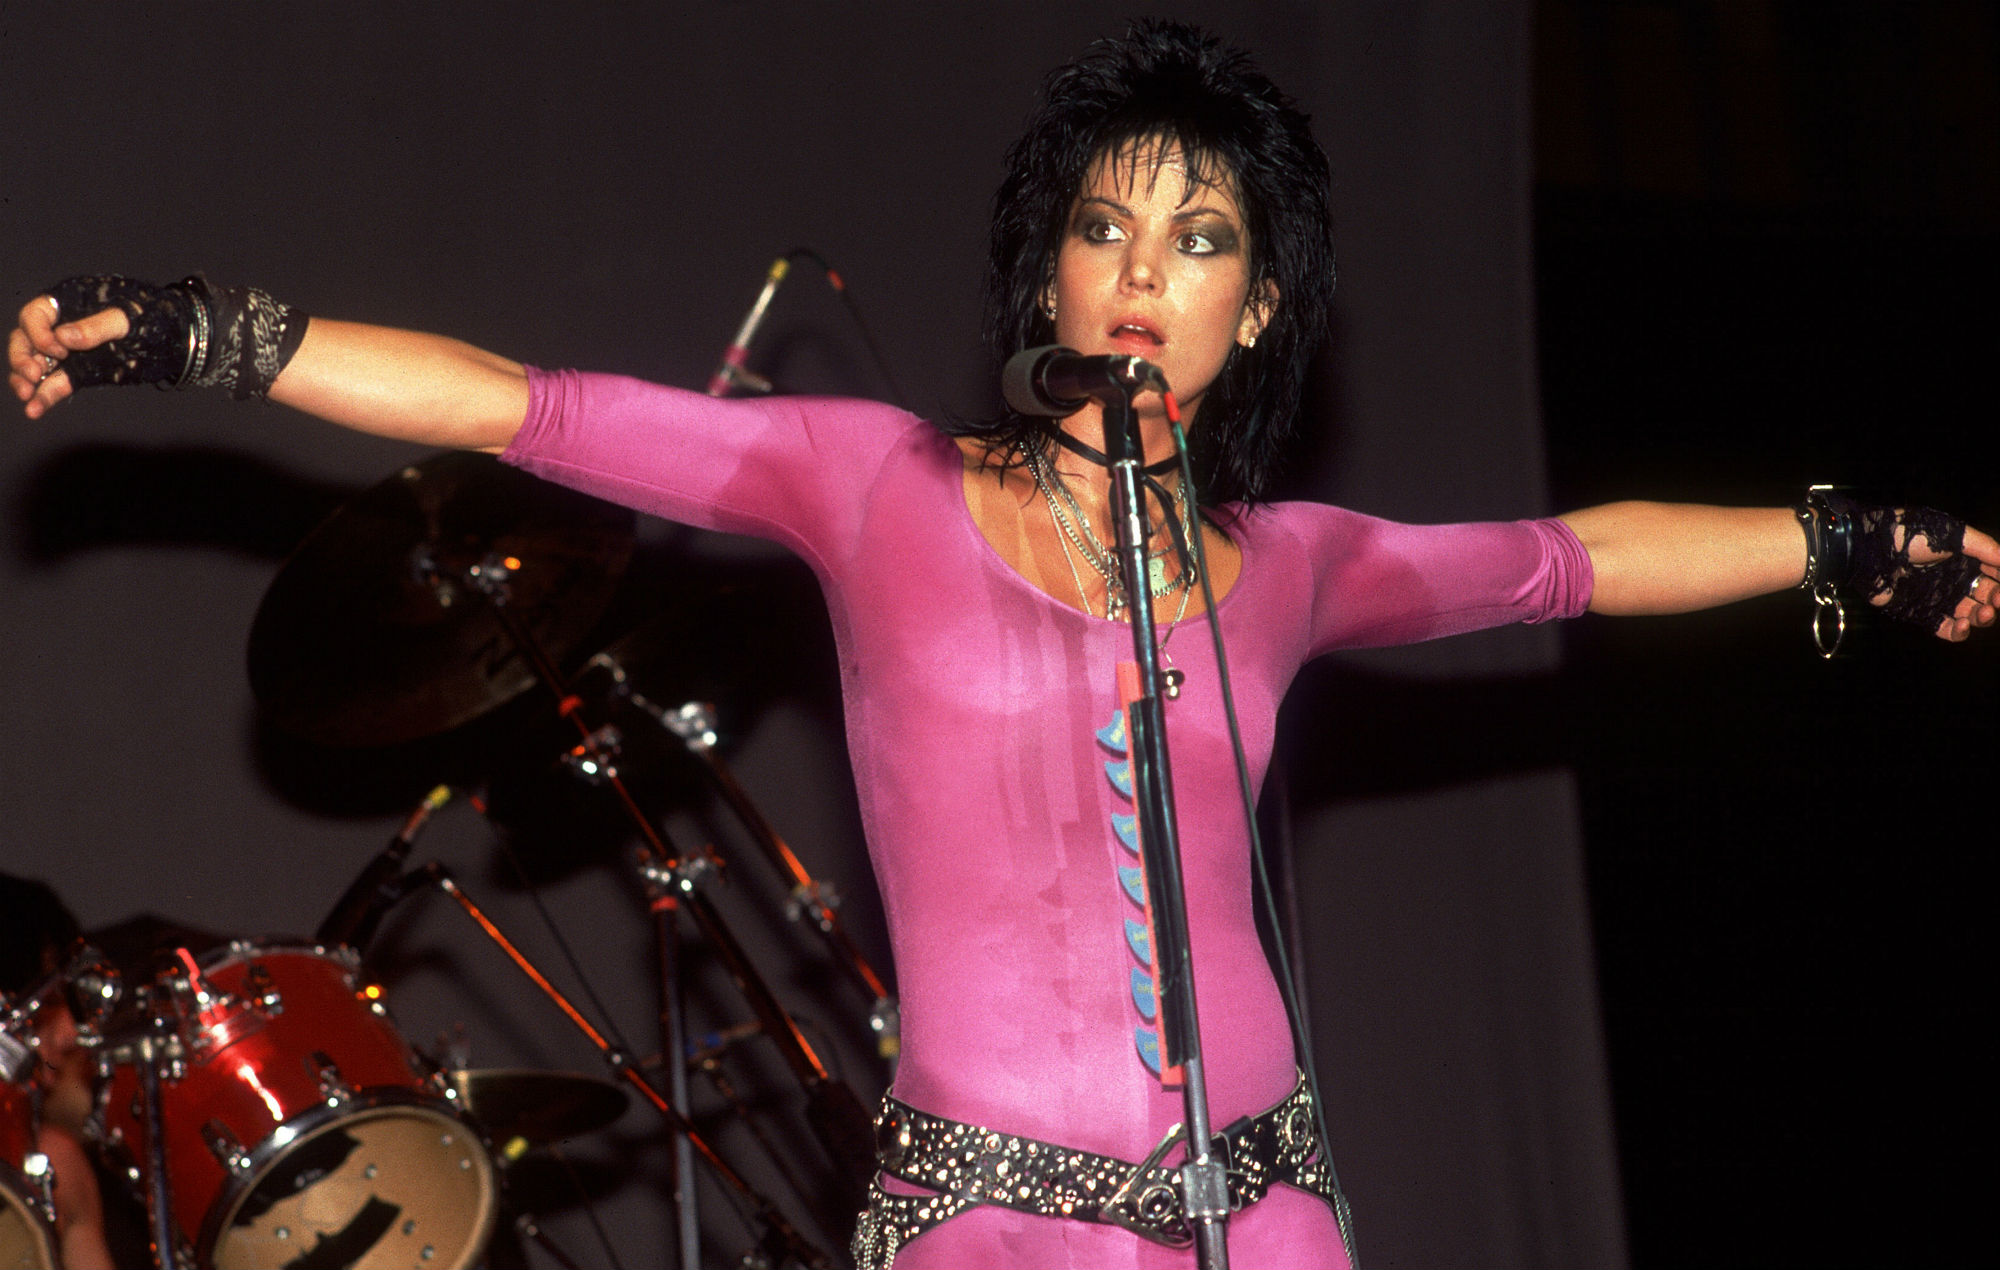 """NME Festival blog: Joan Jett on replacing Cherie Currie in The Runaways: """"I had to step up"""""""